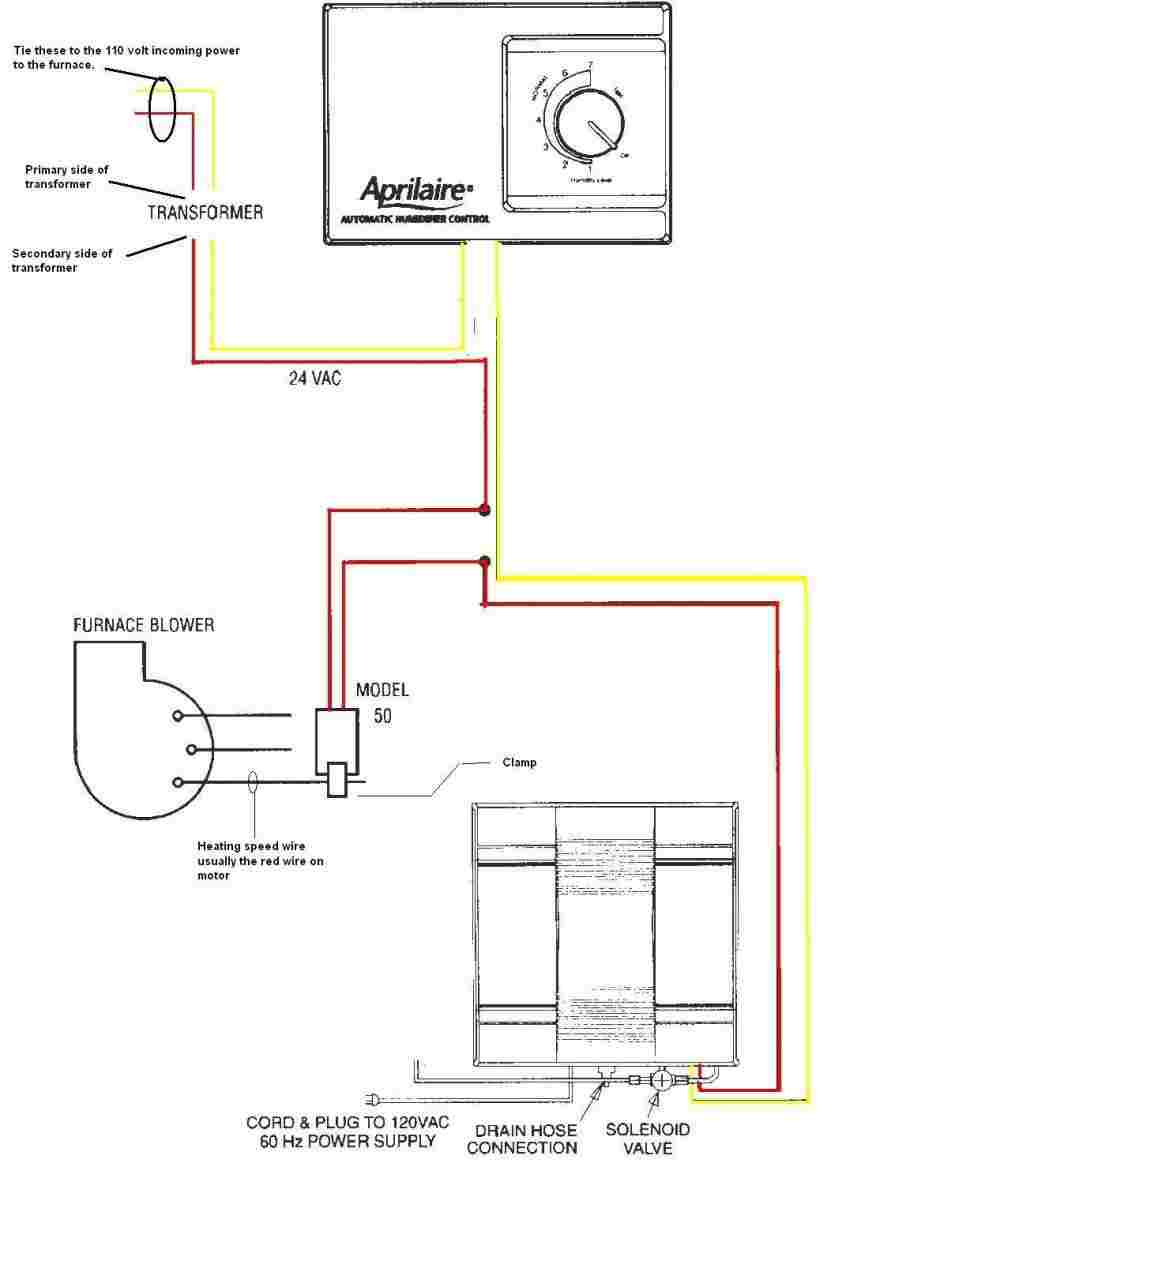 Humidifier Wiring For Homes | Wiring Diagram - Nest Humidifier Solenoid Wiring Diagram